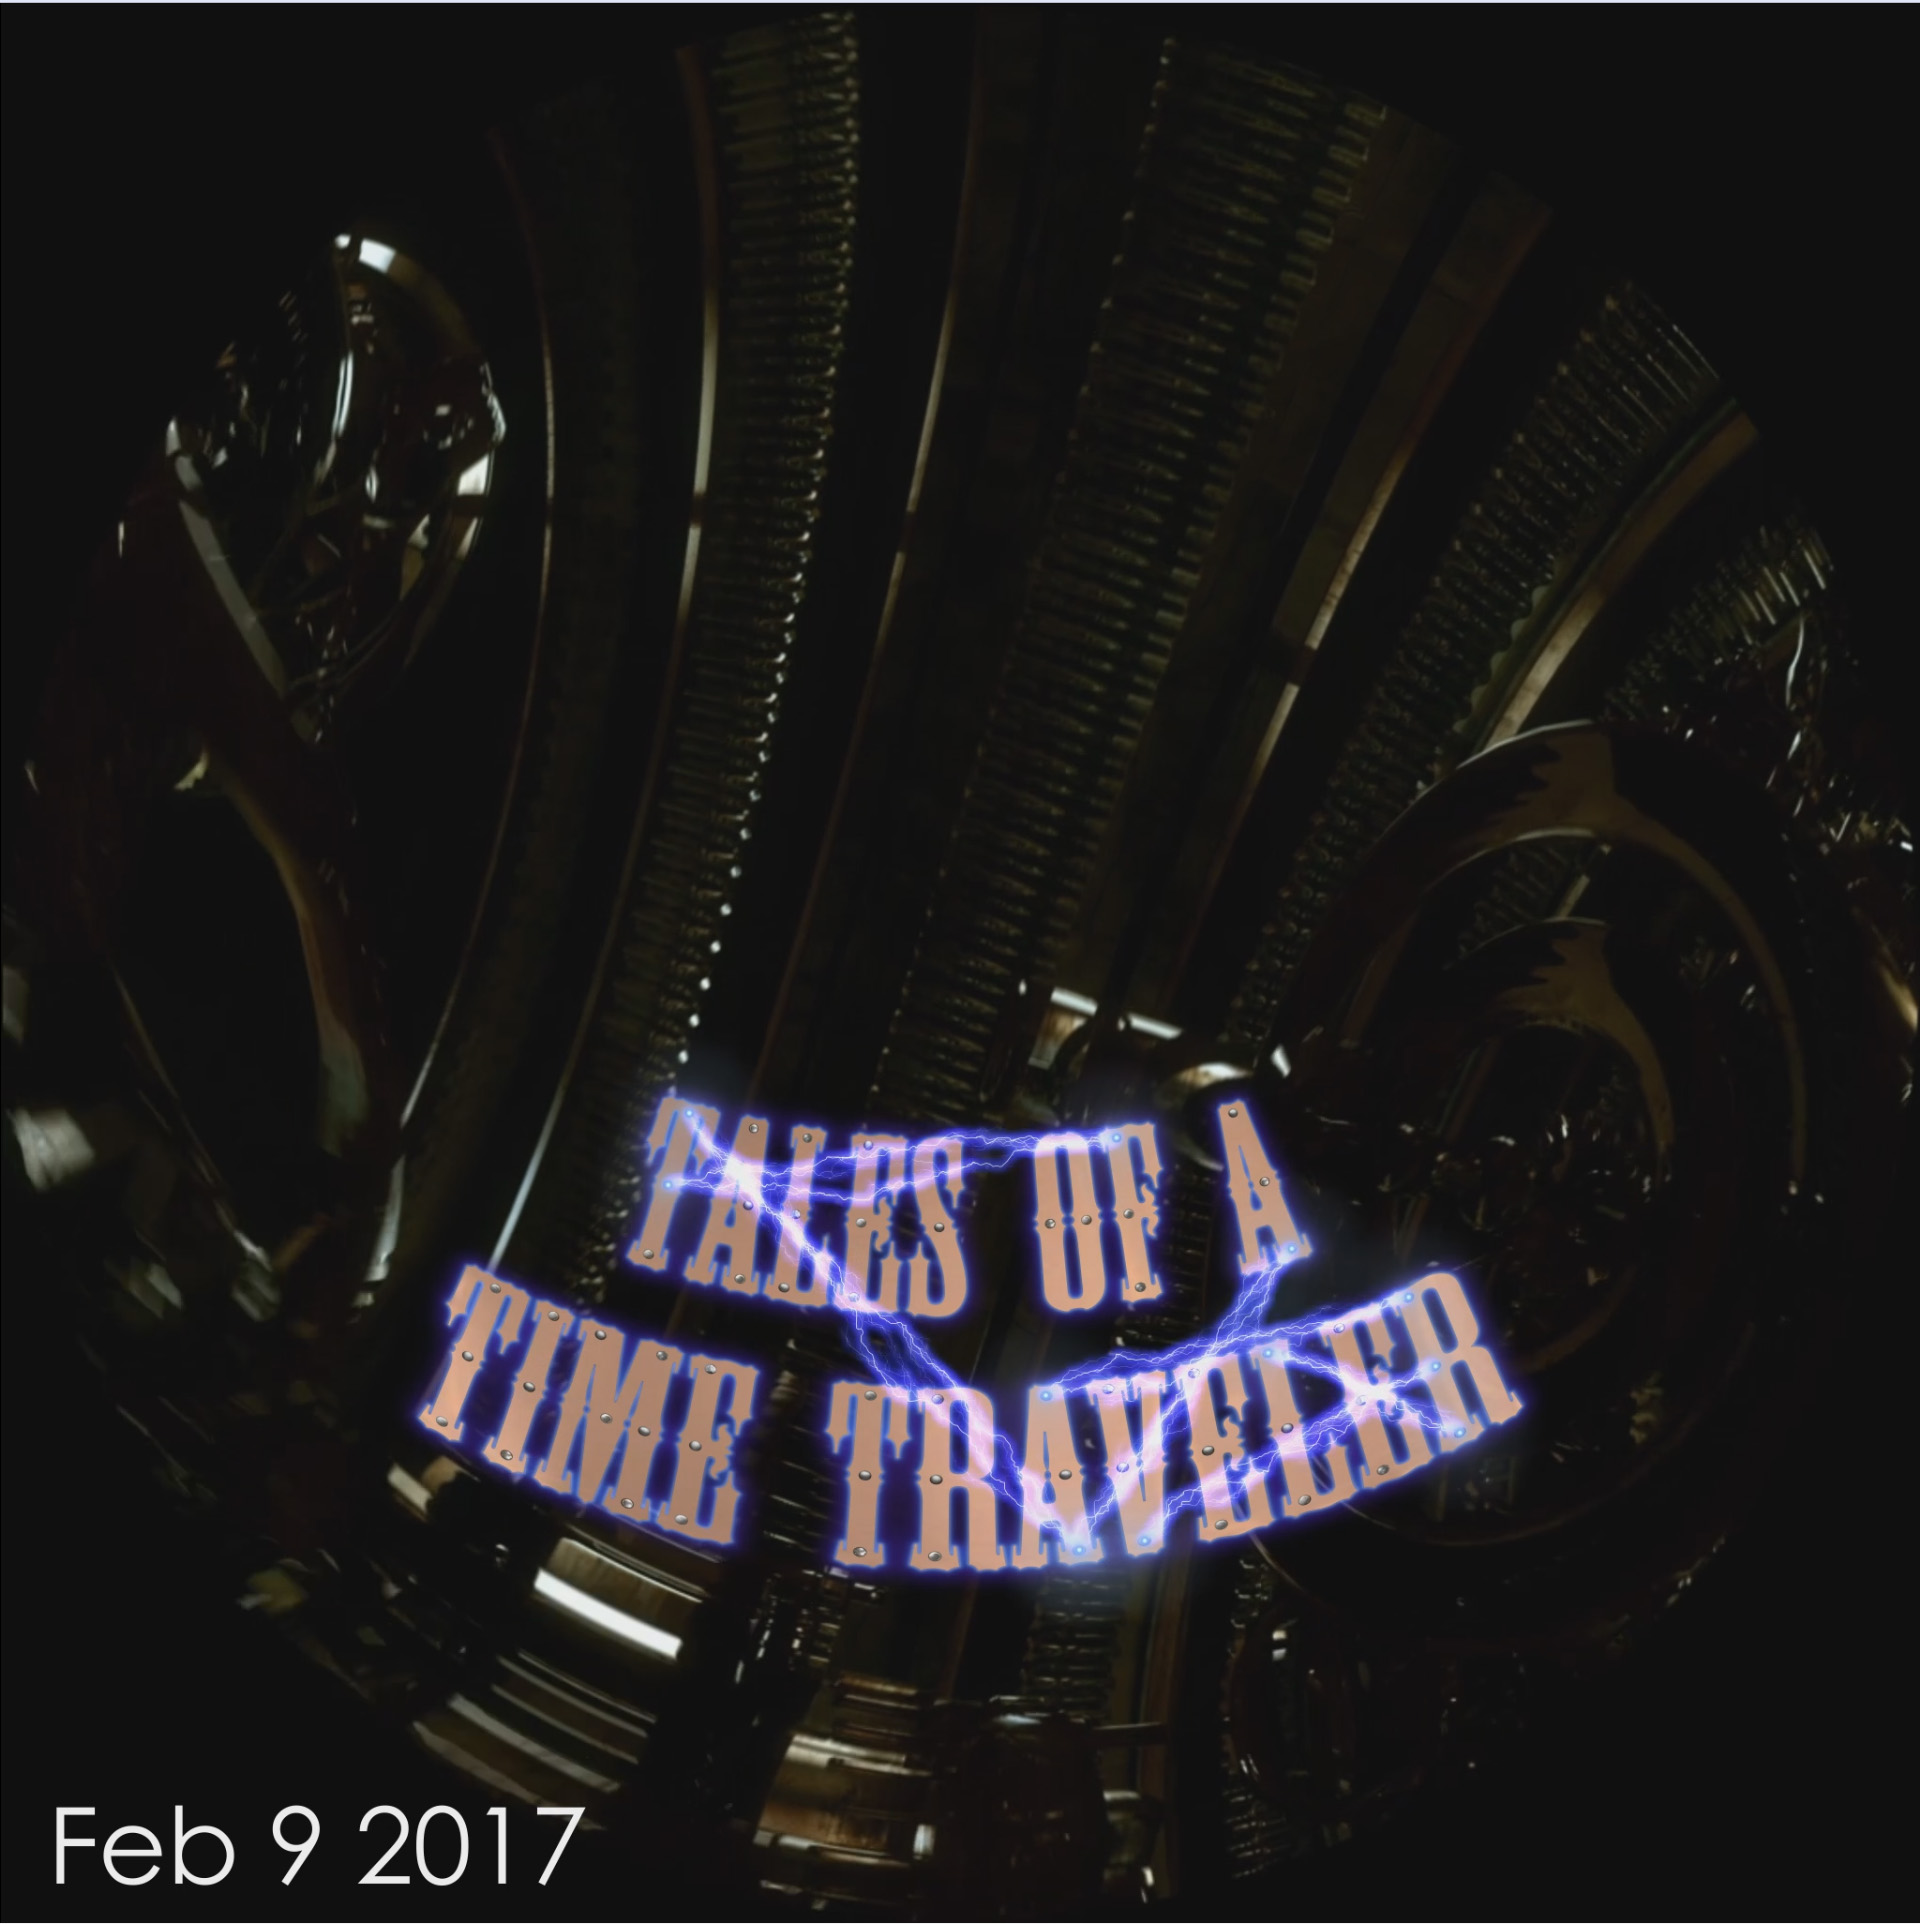 Tales Of A Time Traveler Houston Museum Natural Science Shanghai Et Ticket Legoland Discovery Center Weekday Times Score Is Composed By Chance Thomas And Performed The Utah Film Orchestra